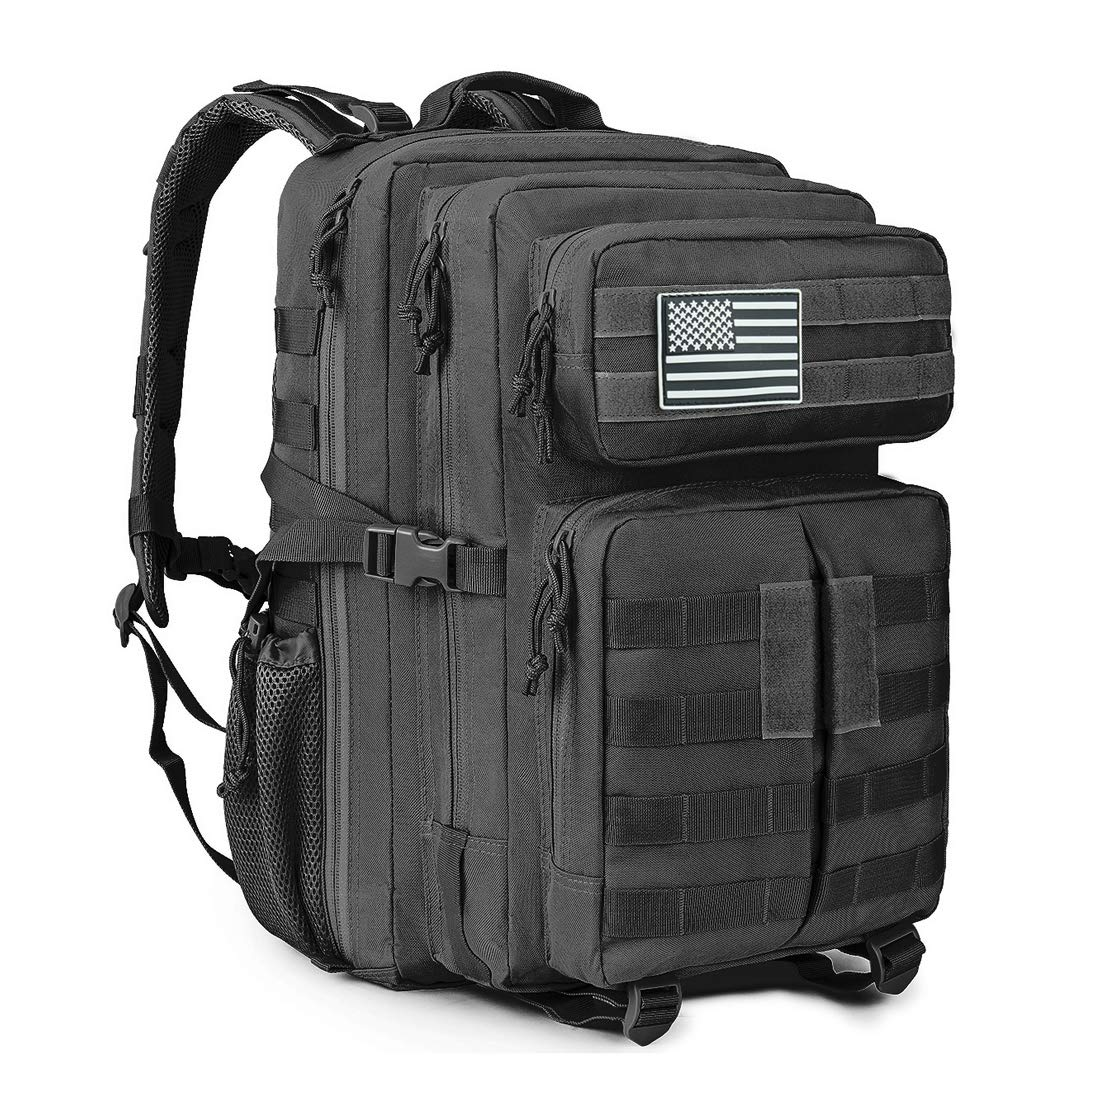 MEWAY 42L Military Tactical Backpack Large Assault Pack Molle Outdoors Daypack